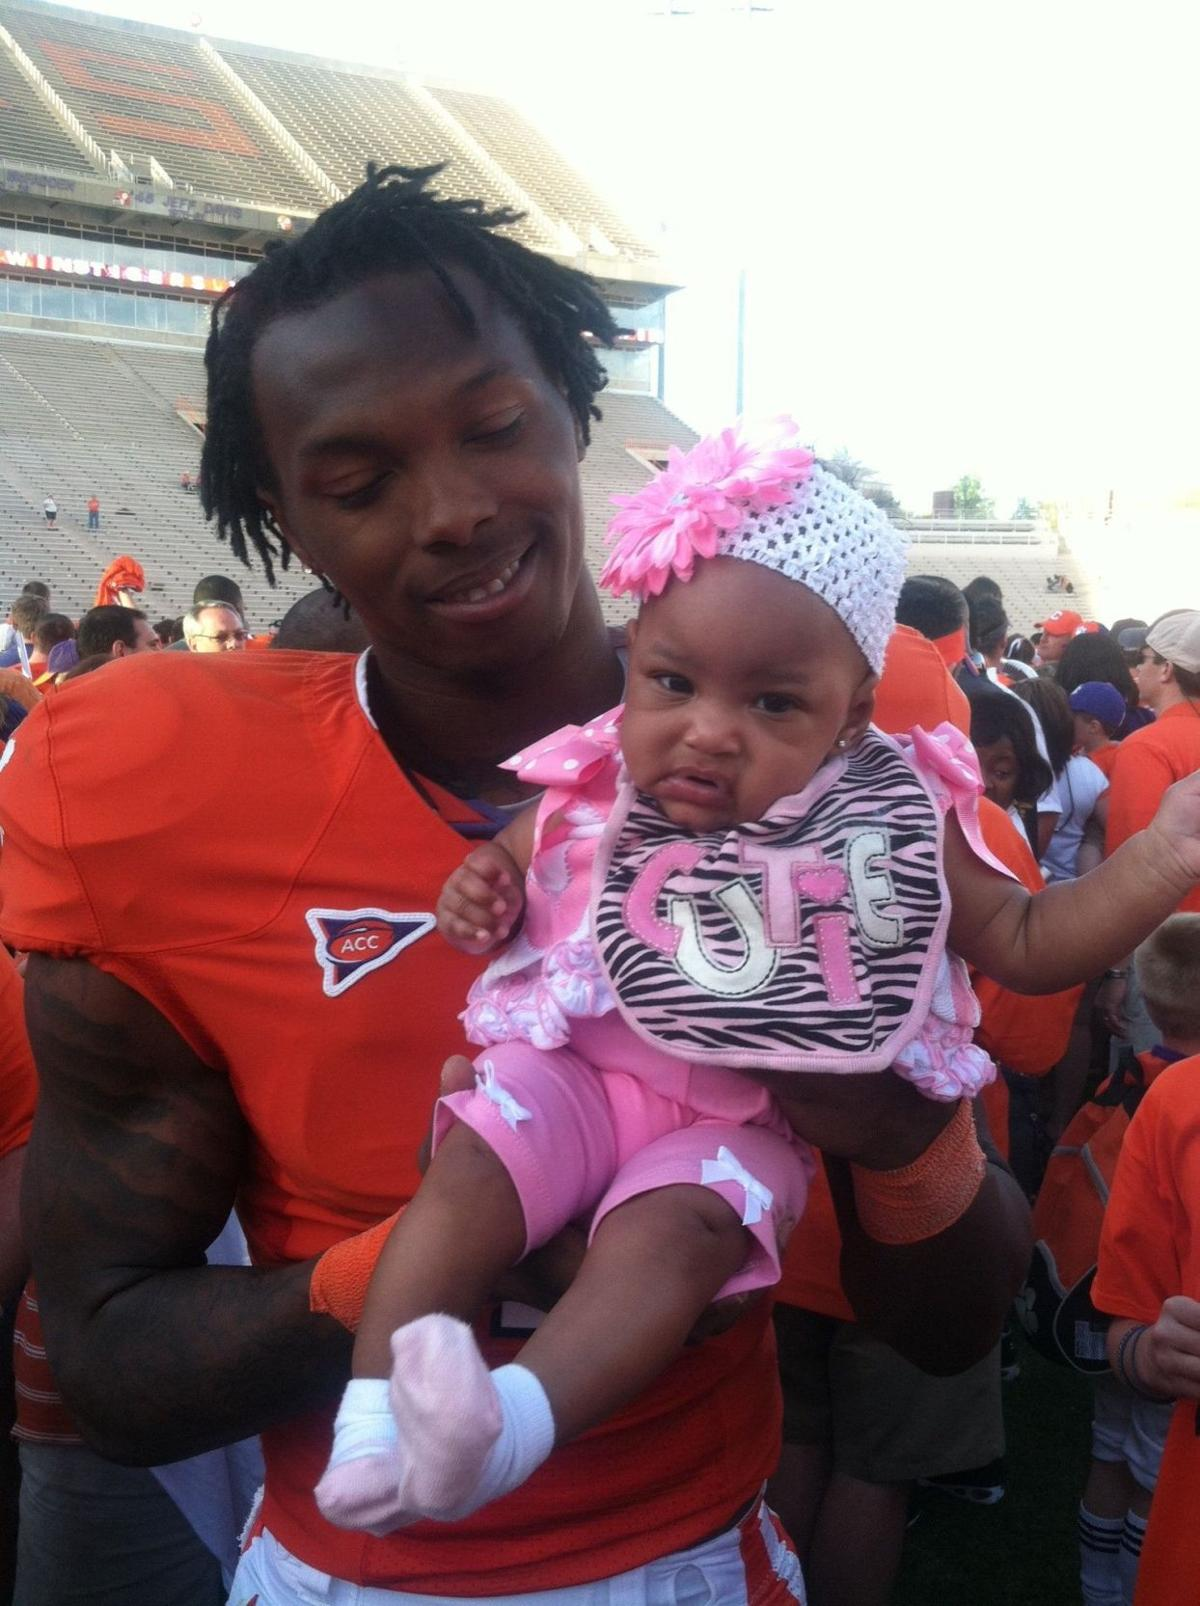 Martavis Bryant drafted by Pittsburgh in fourth round